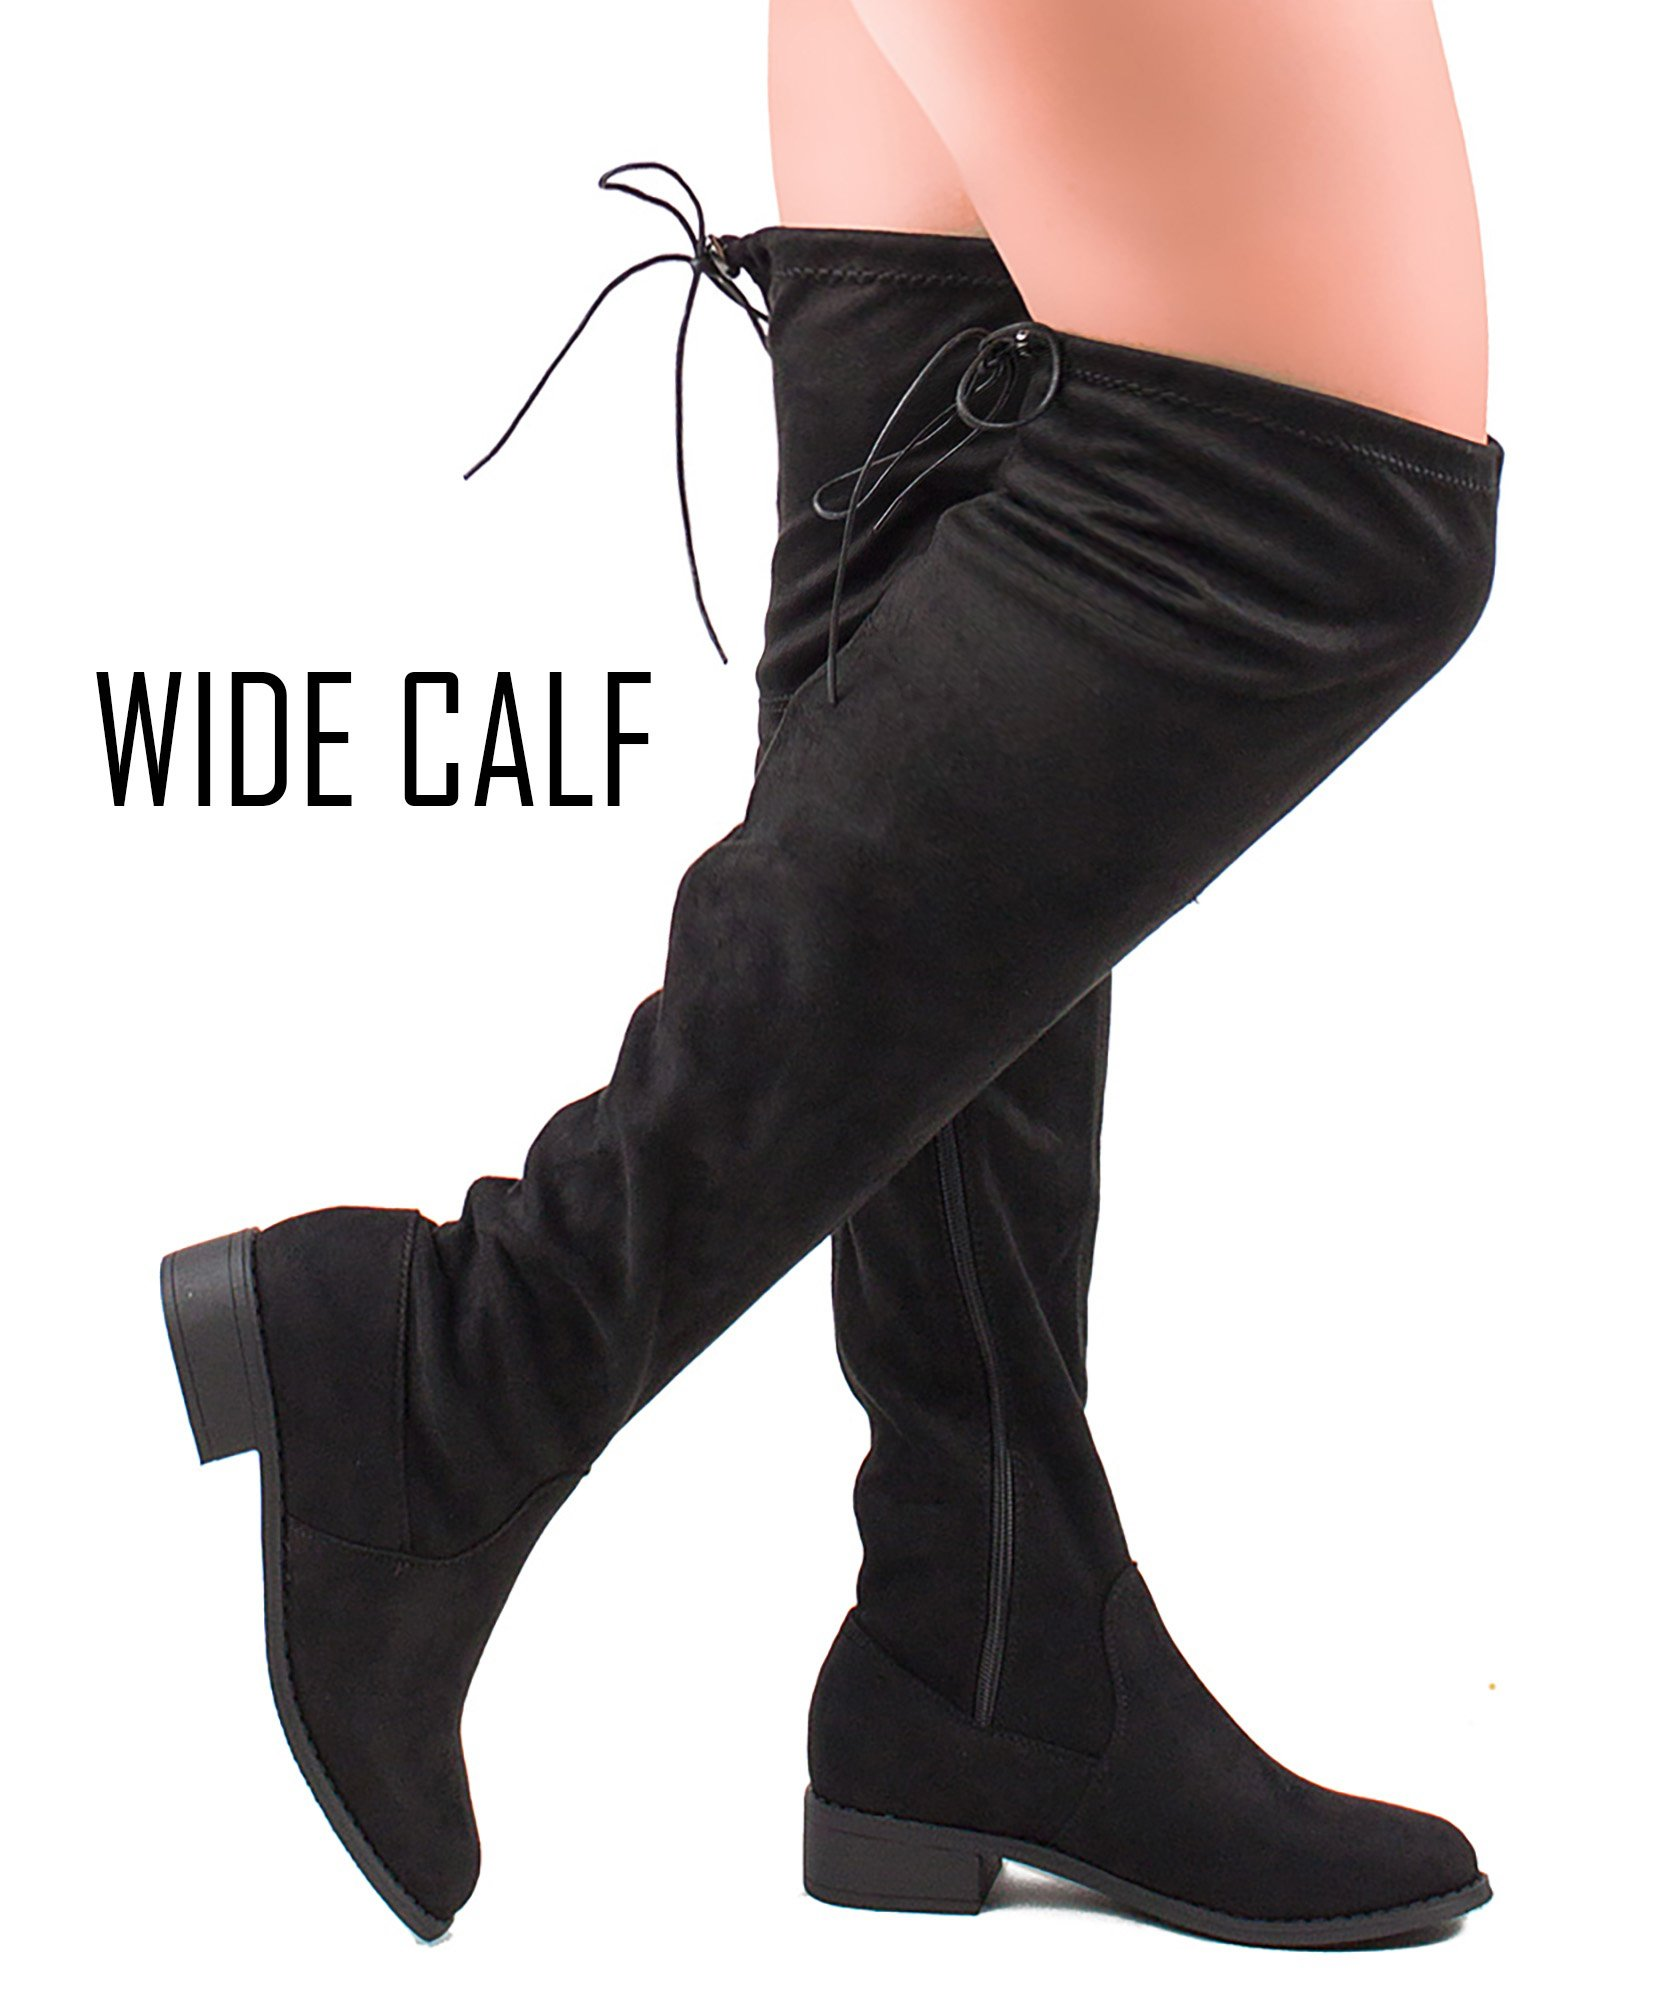 RF ROOM OF FASHION Women's Faux Suede Back Tie Fitted Flat to Low Chunky Heel Over The Knee High Boots Black-Wide Calf (8)